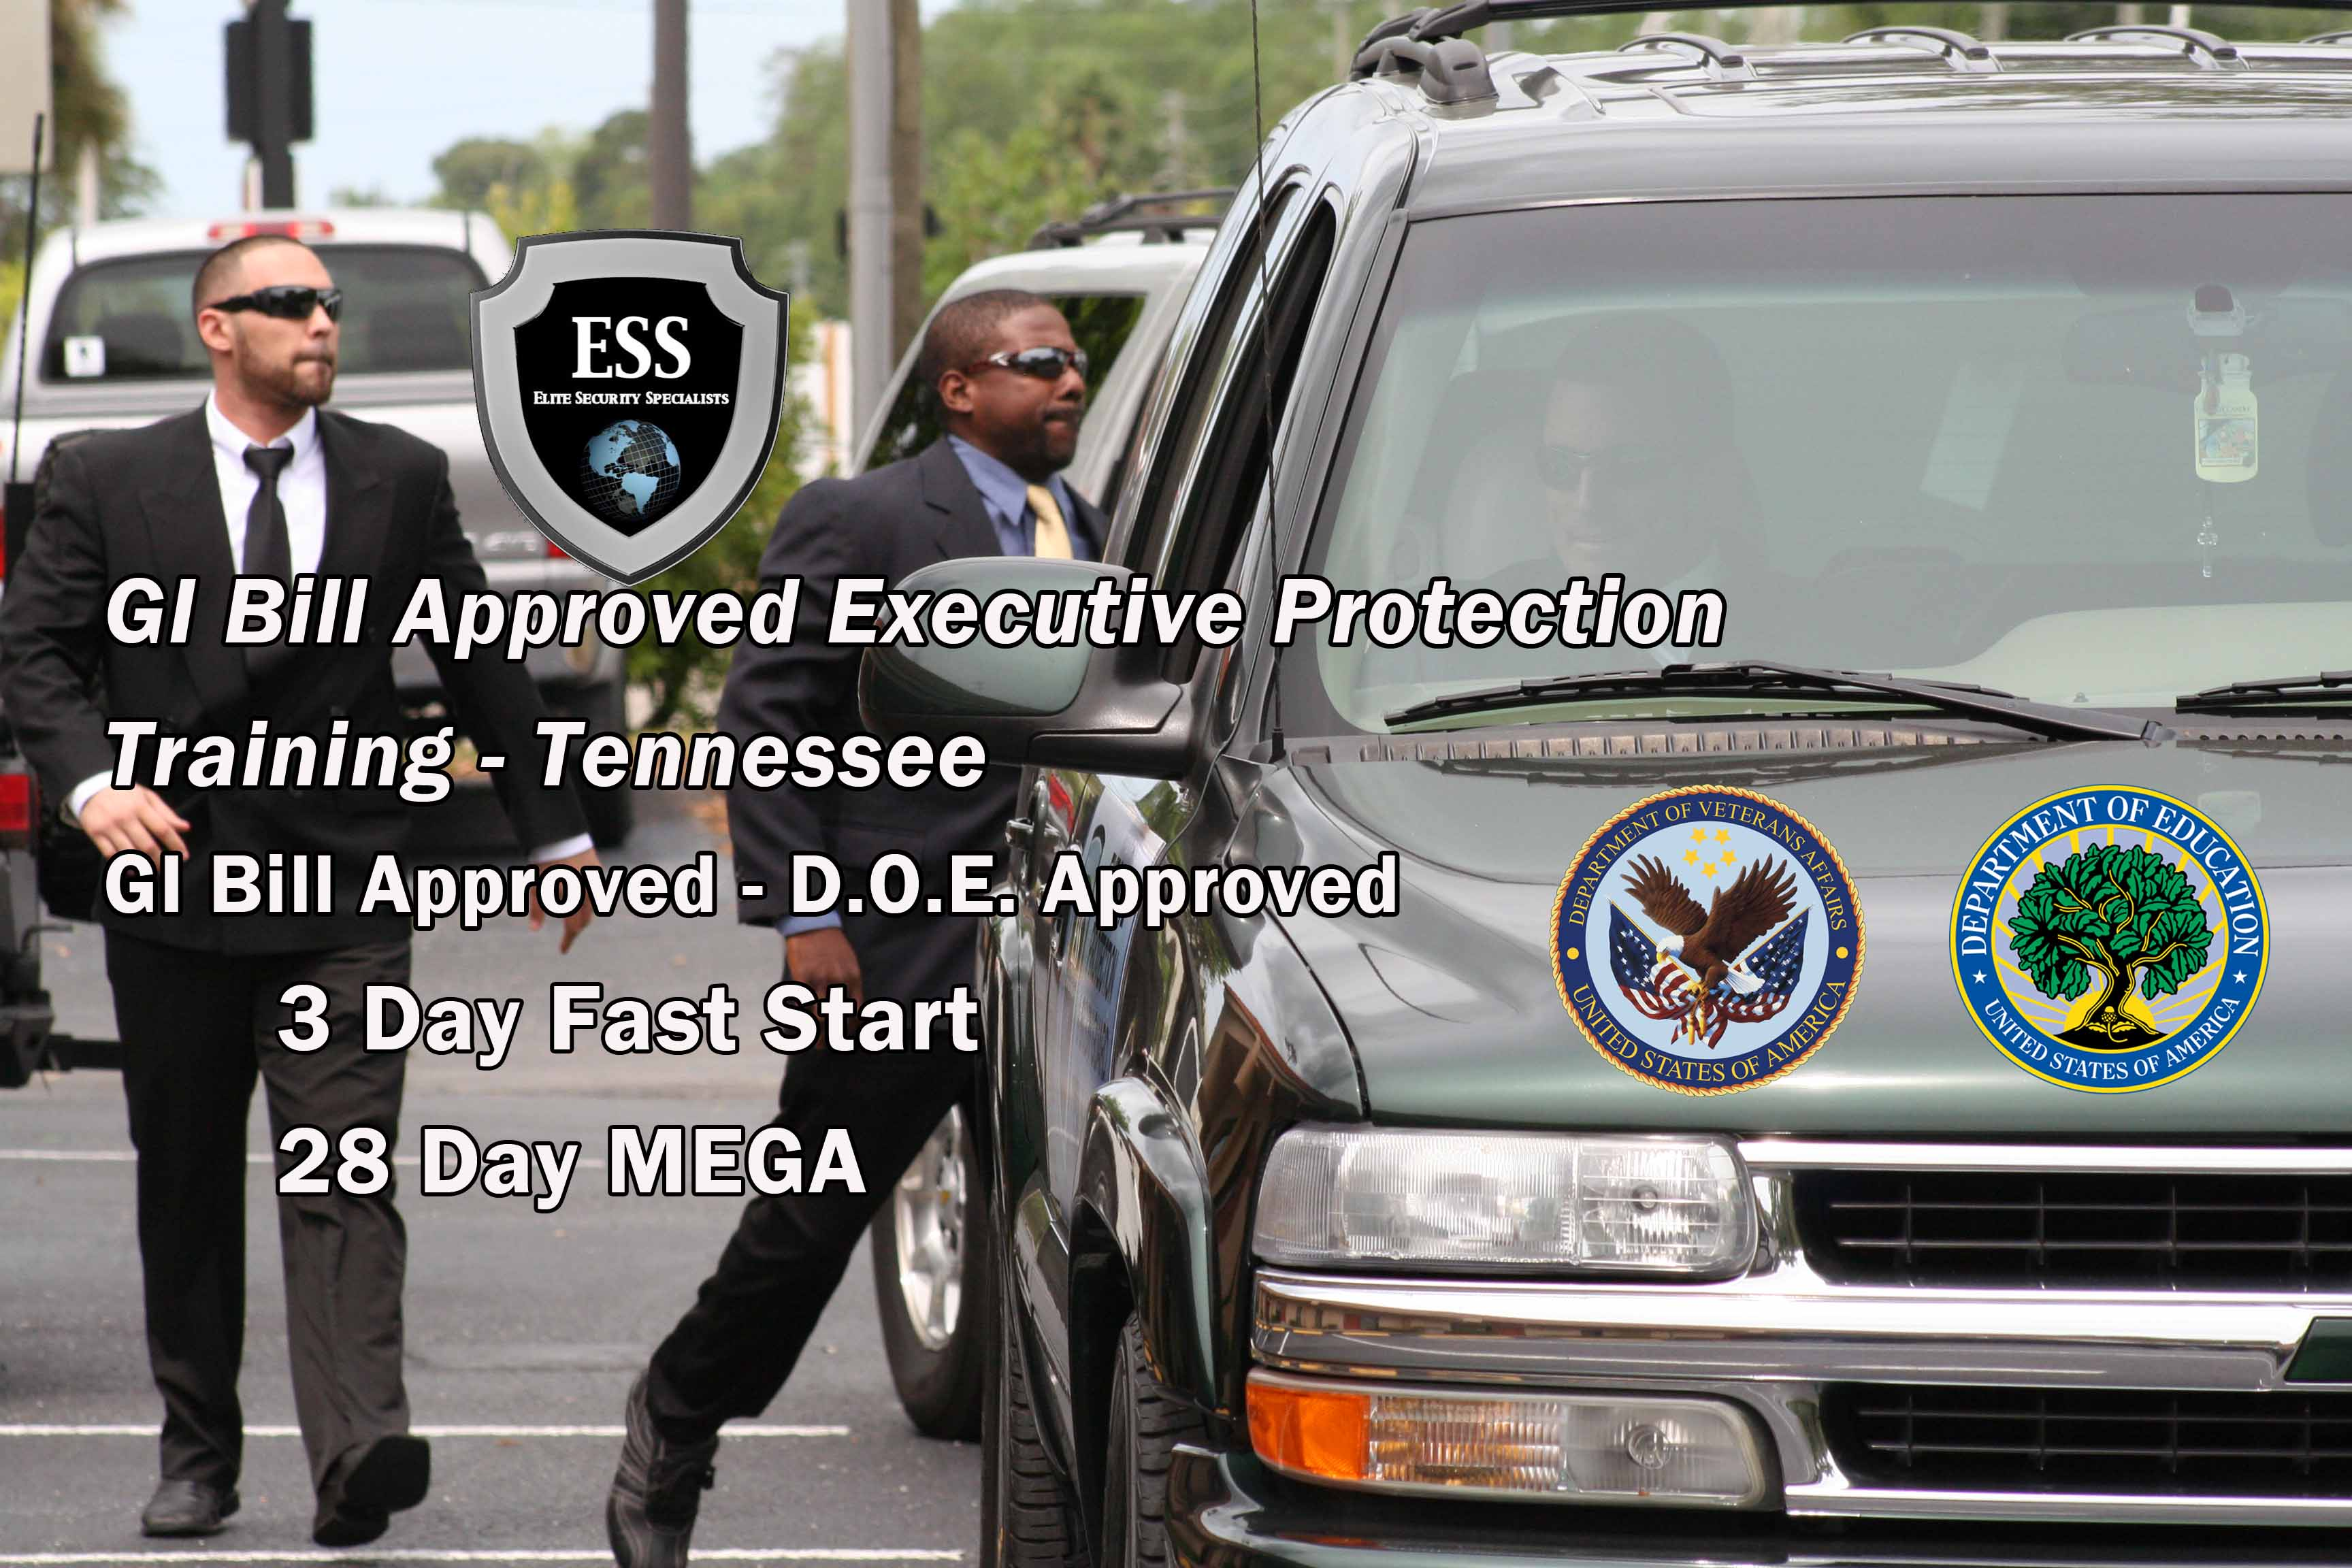 GI Bill Approved Executive Protection Training - Tennessee